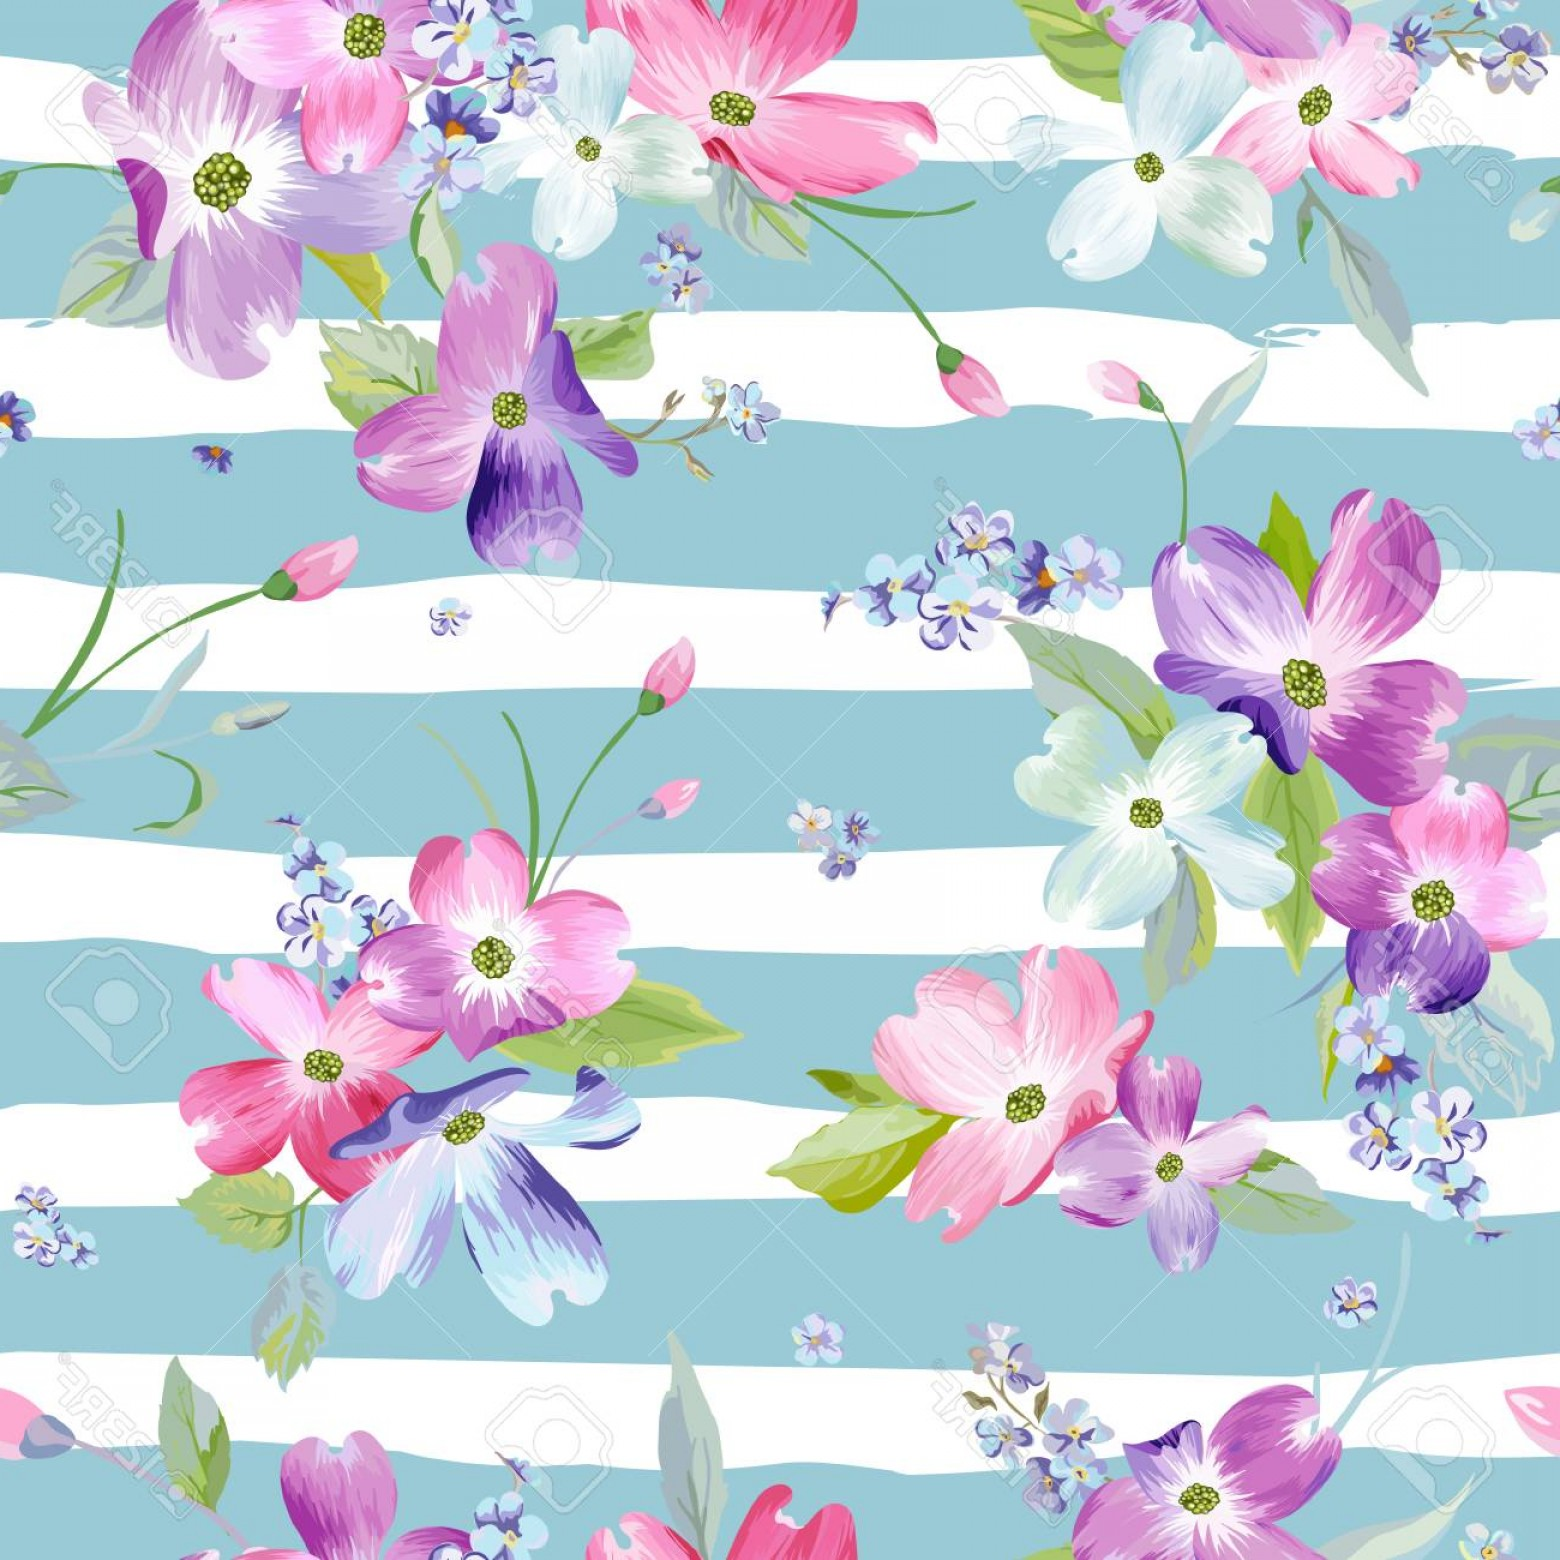 Photostock Vector Spring Flowers Seamless Pattern Watercolor